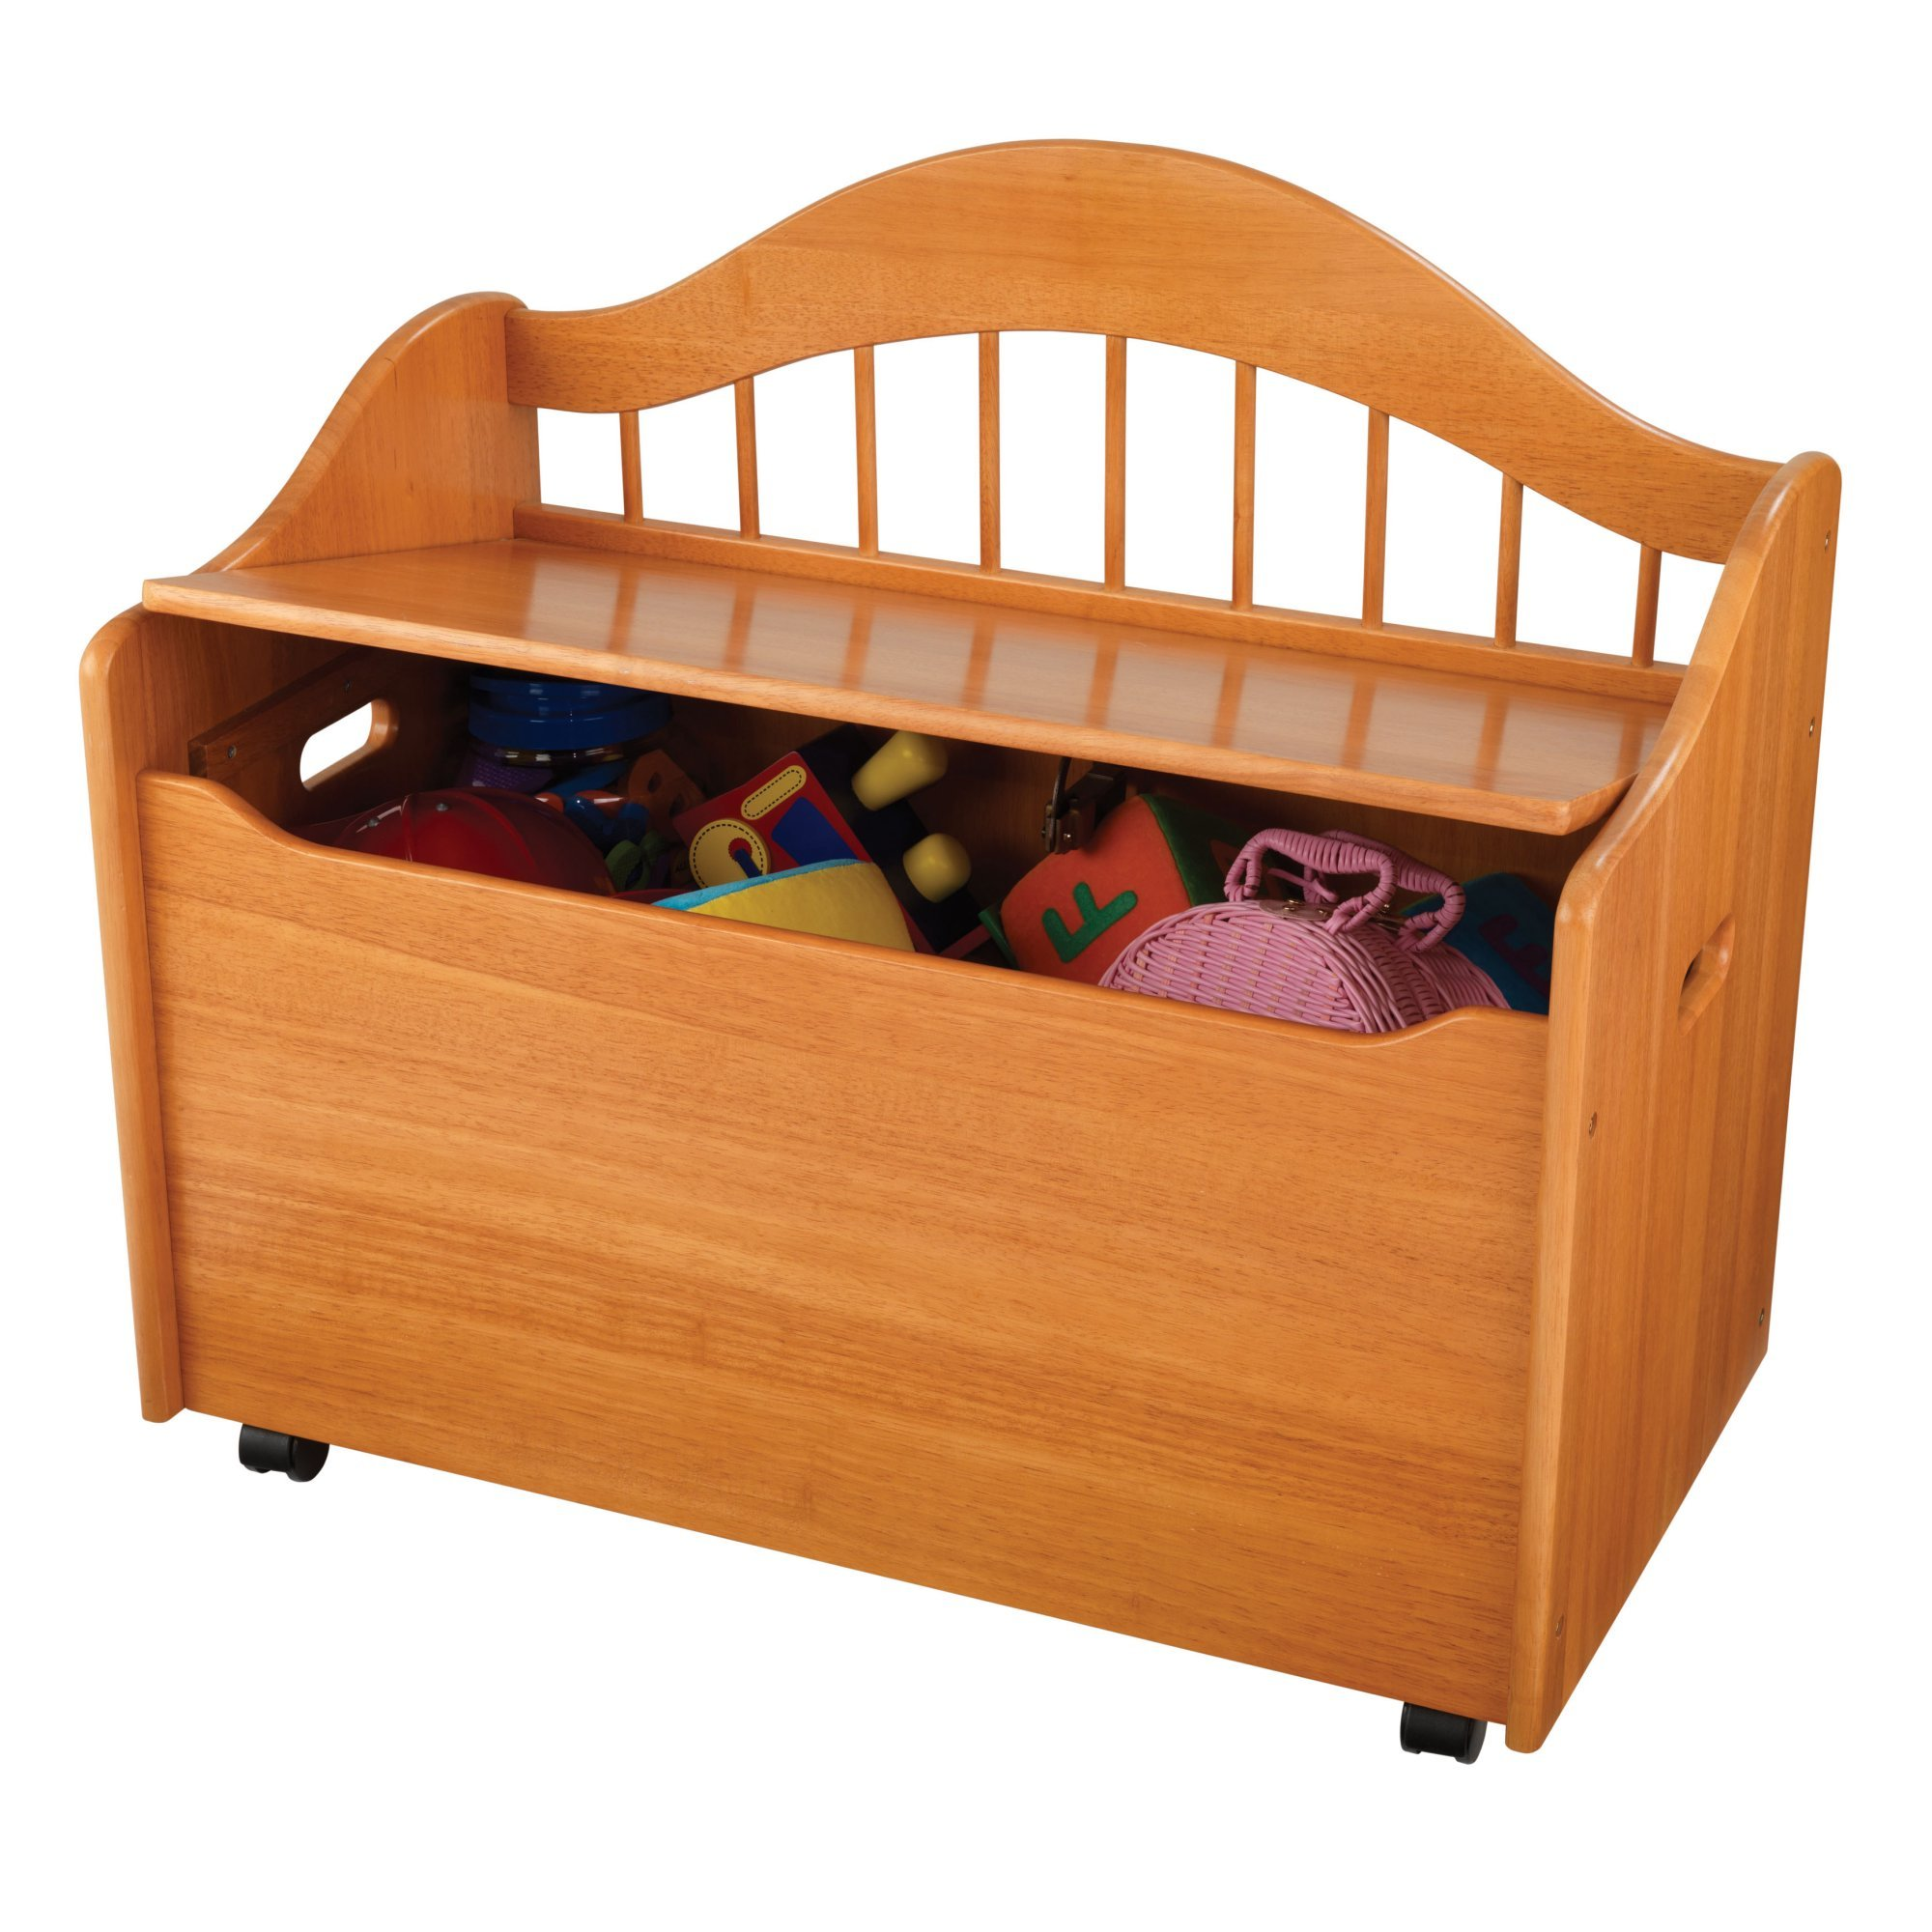 Beautiful and Portable Storage Chest Toy Box with Handles, Wheels for Portability, Sturdy Wood Construction, Safety Hinge, Doubles as a Bench, Multiple Colors